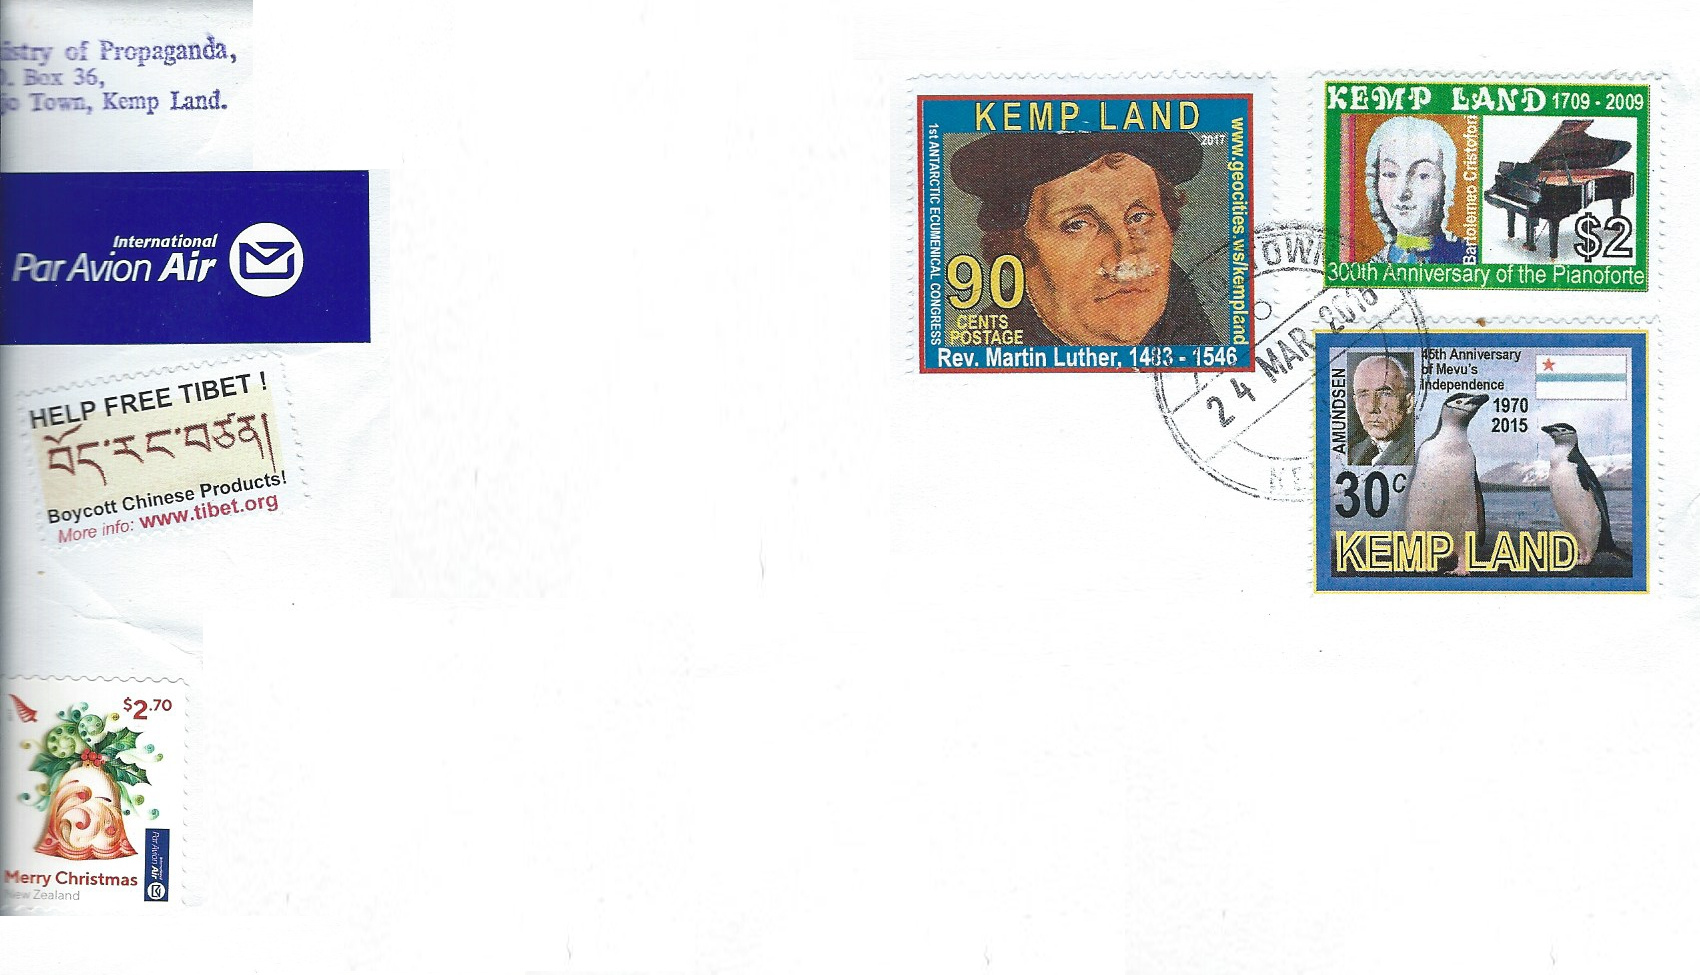 Ökumenischer Kongress, Kemp Land, Calvin, William Booth, Joseph Smith, Luther, Luther Briefmarken